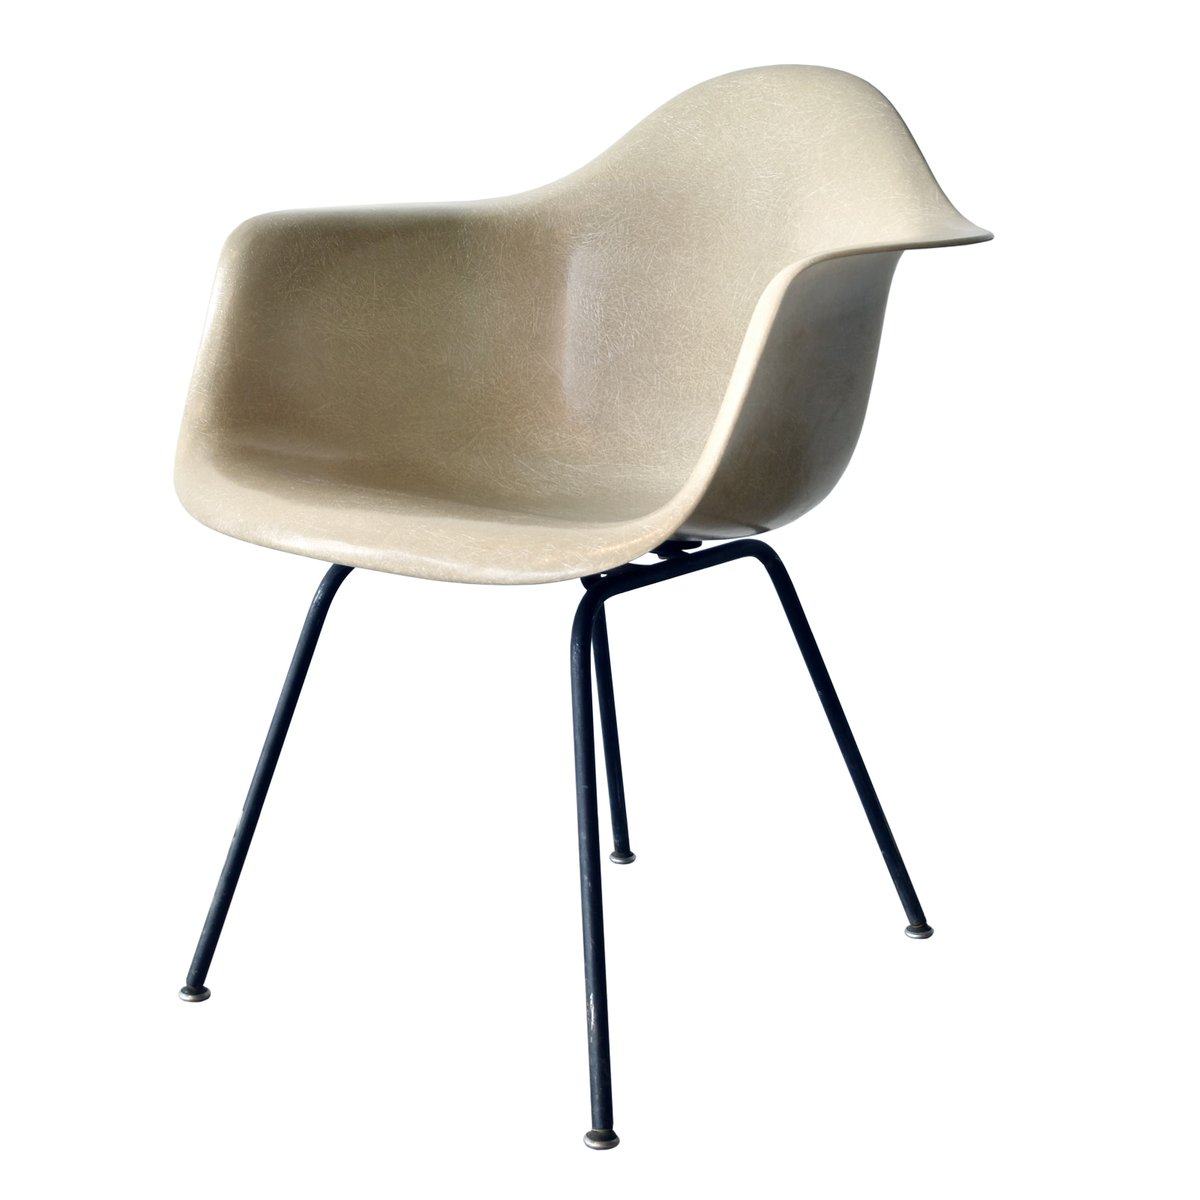 ray eames furniture. dax chair by charles and ray eames for herman miller 1955 furniture a